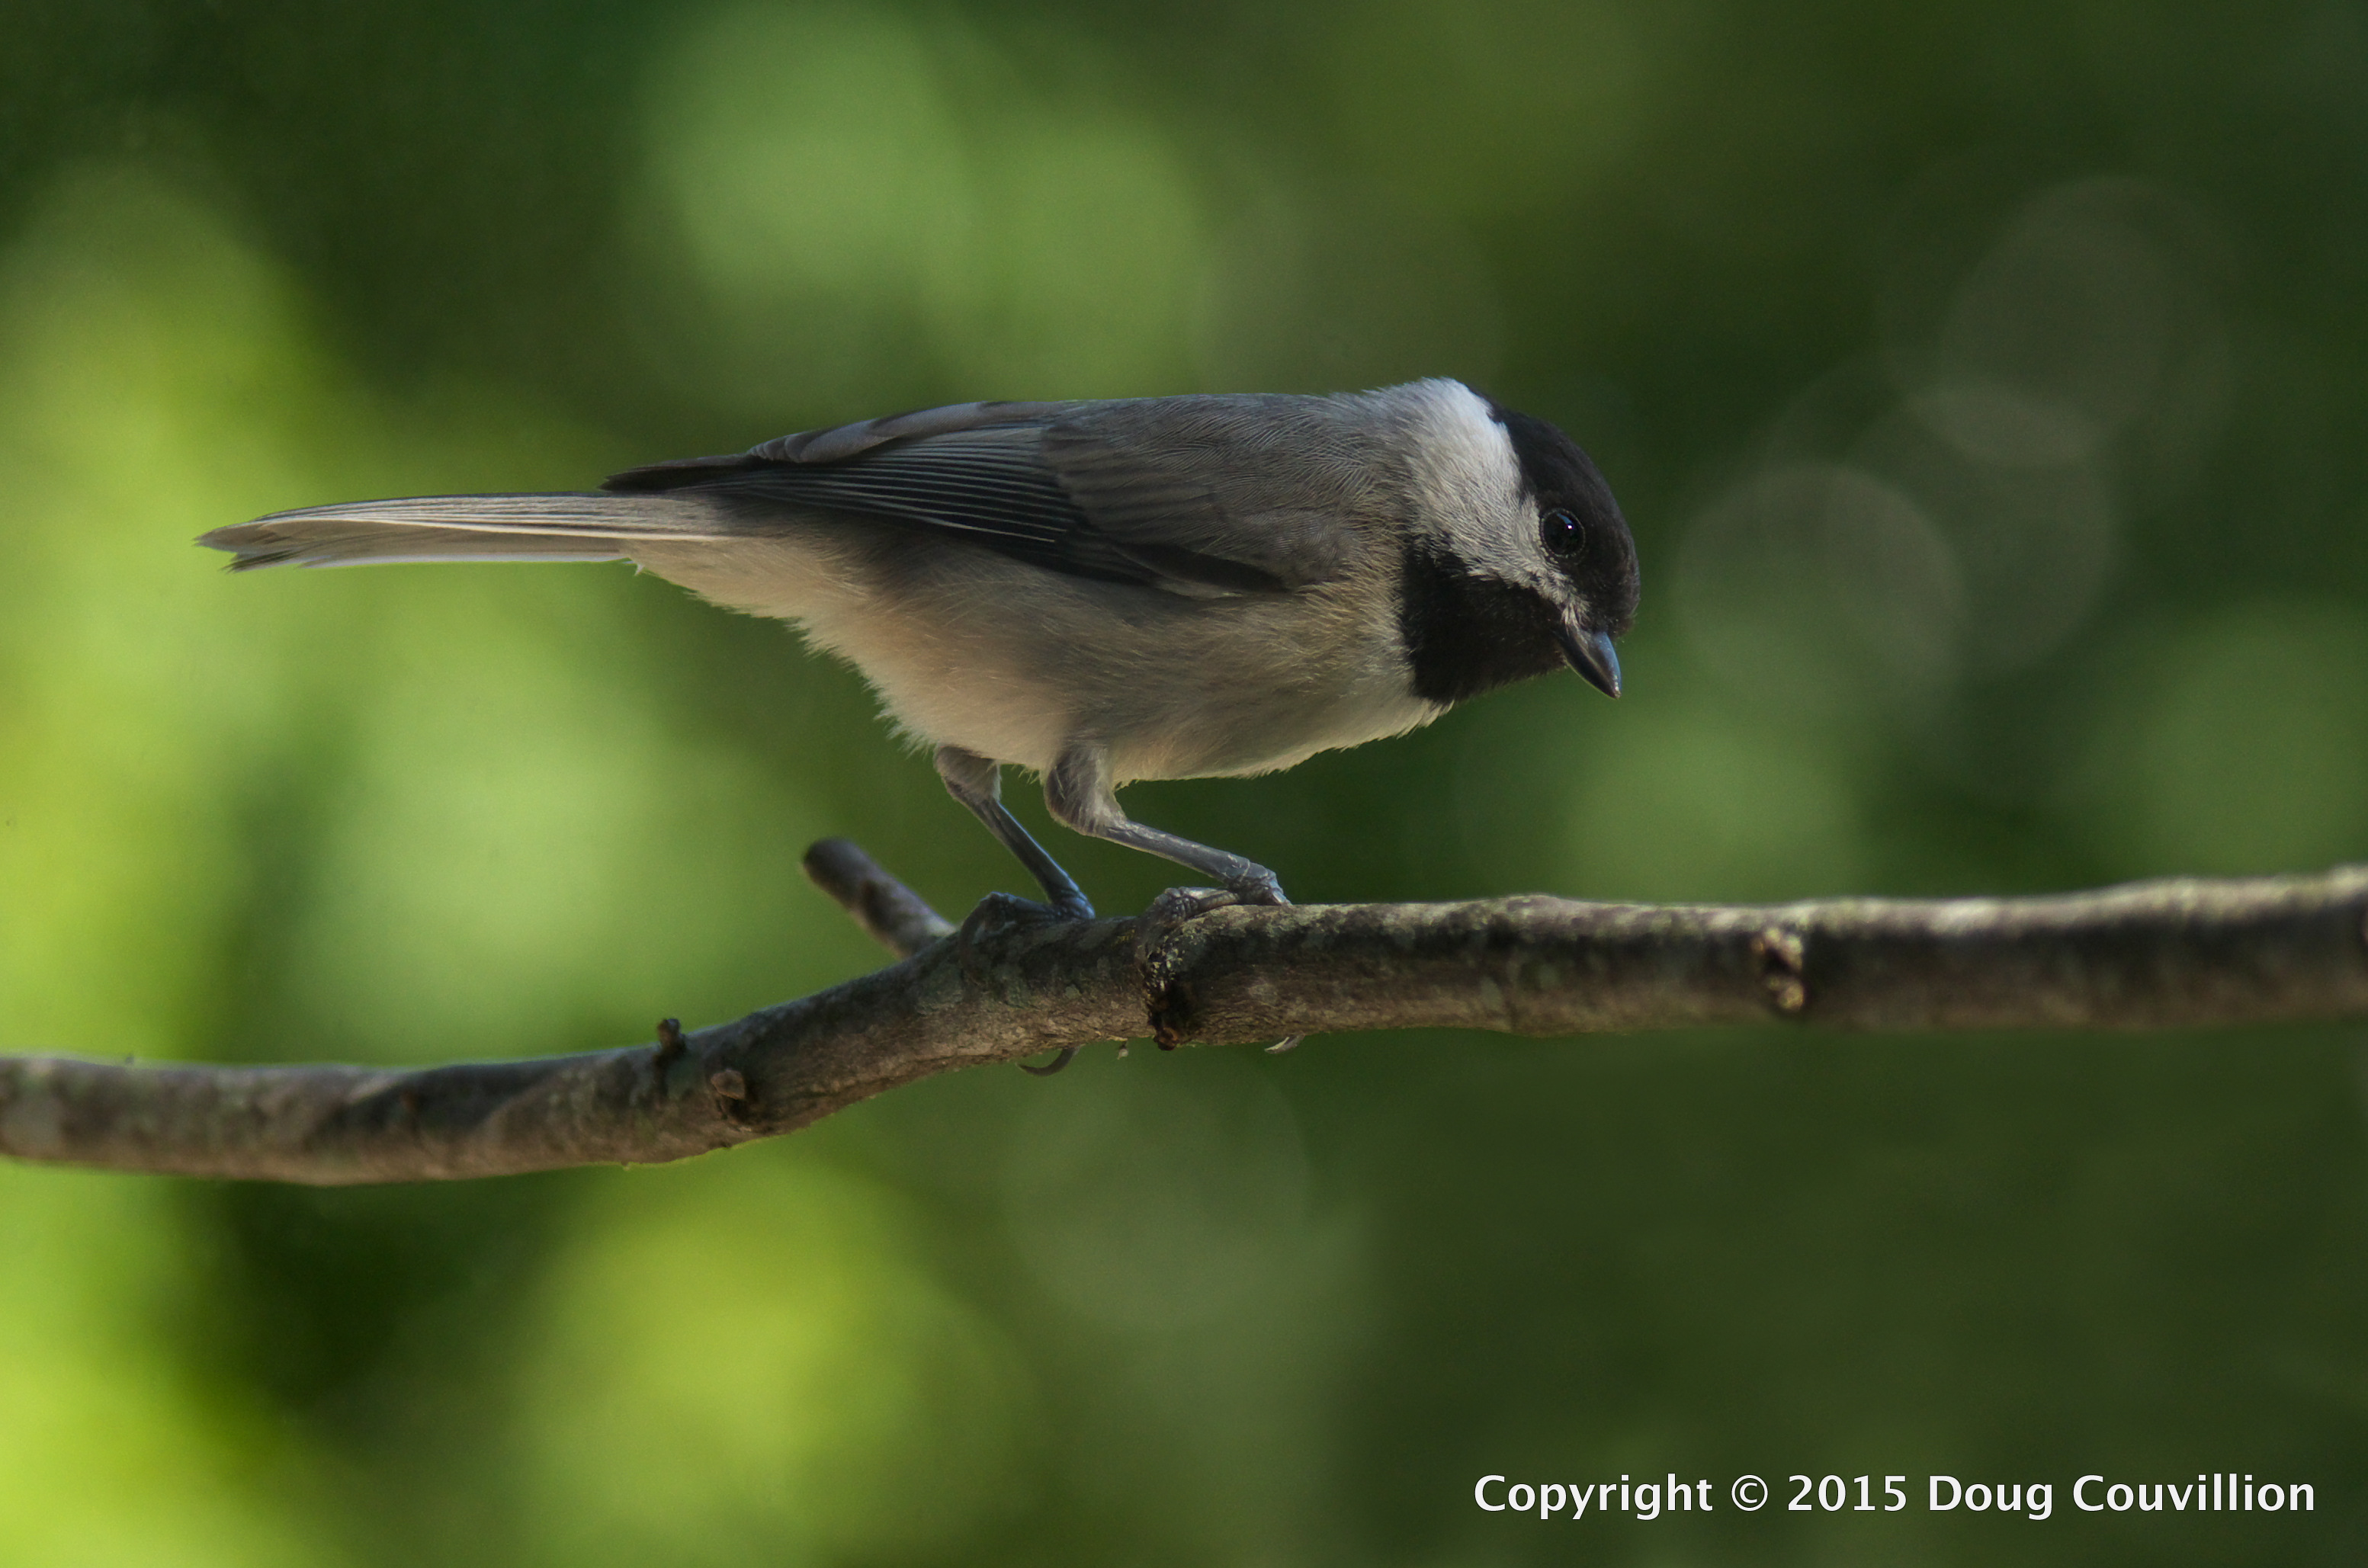 photograph of a Carolina Chickadee on a branch